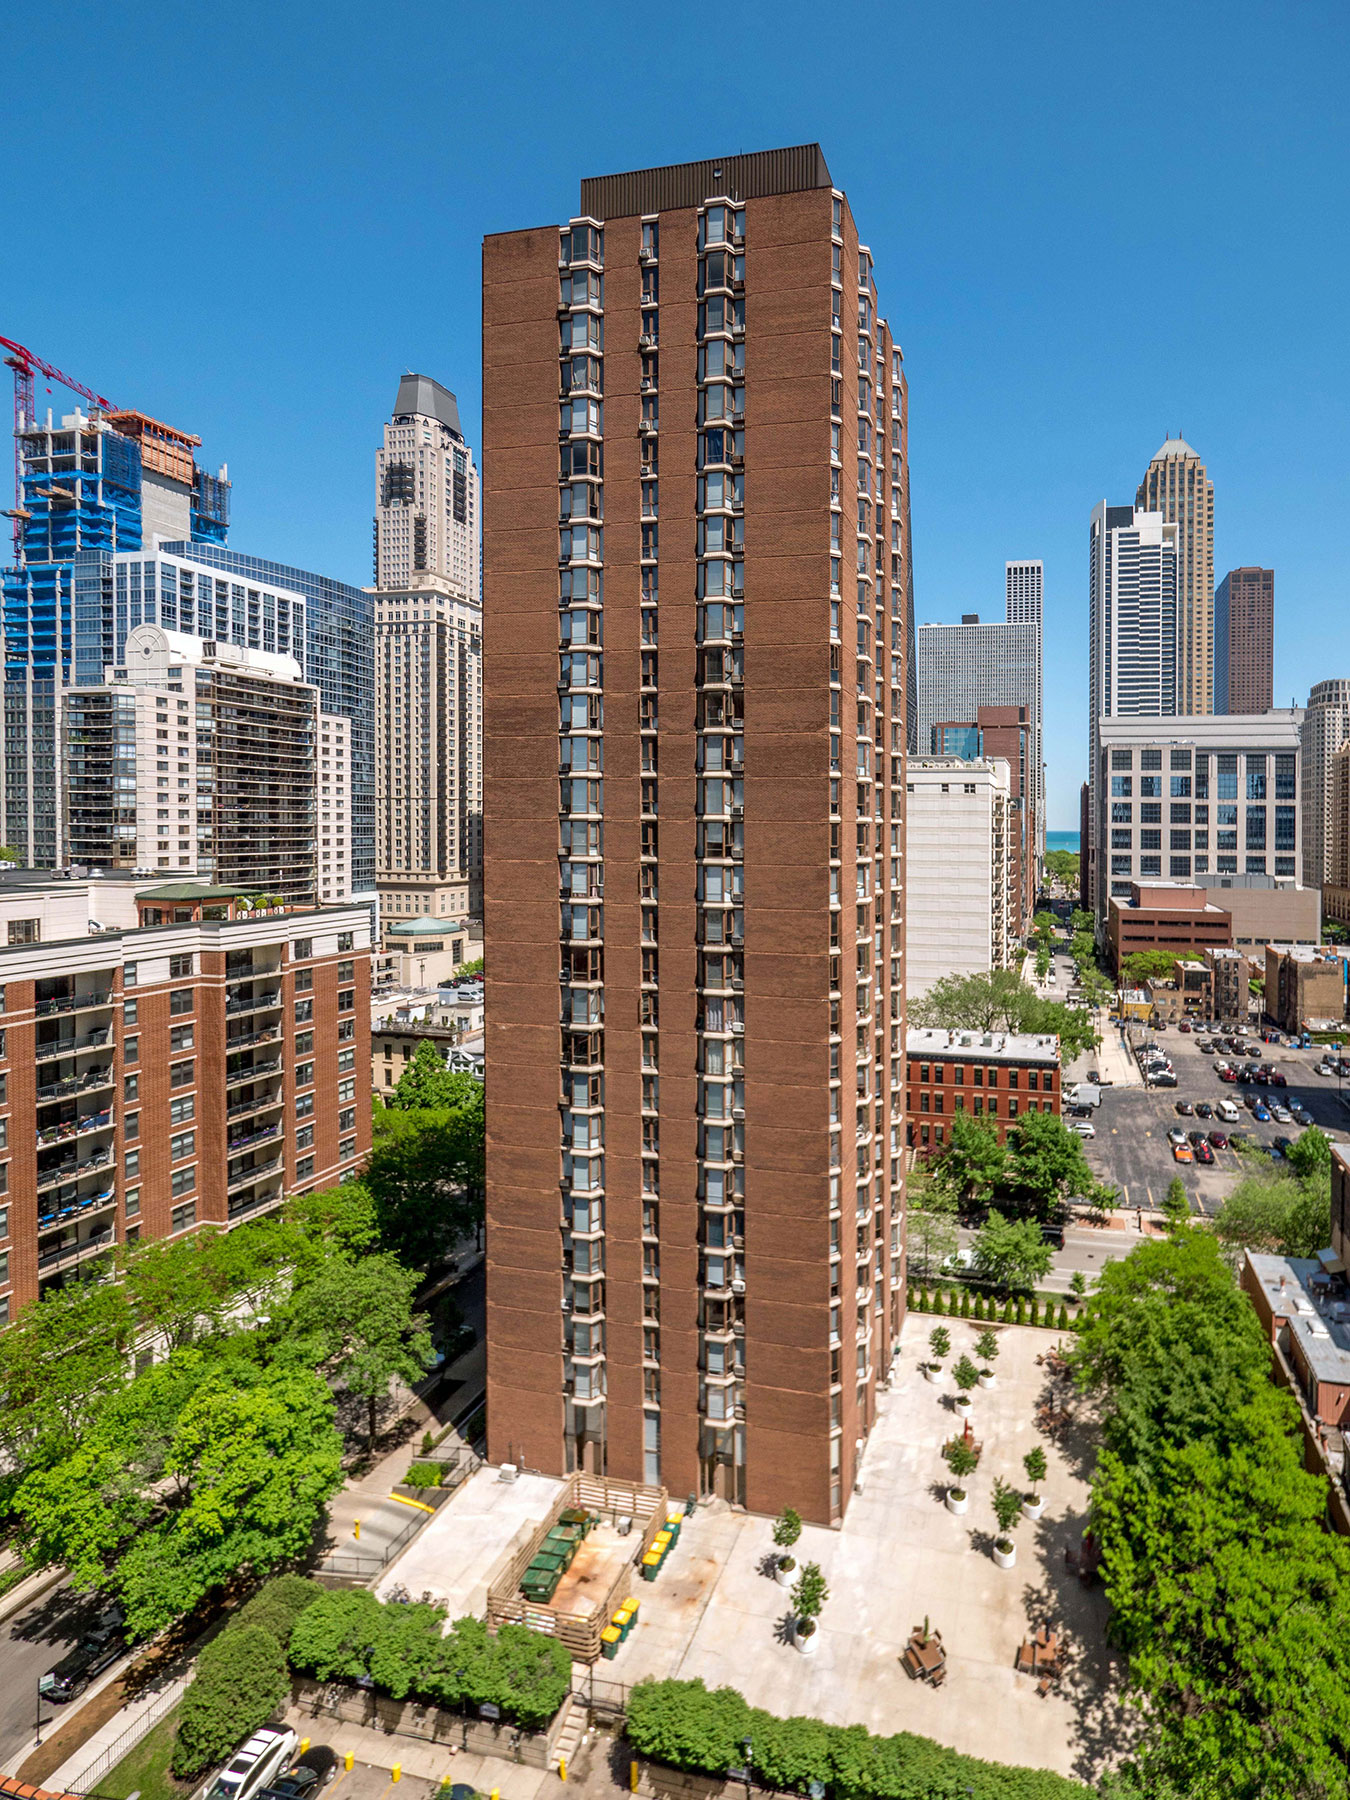 55 W Chestnut Planned Property Management Inc